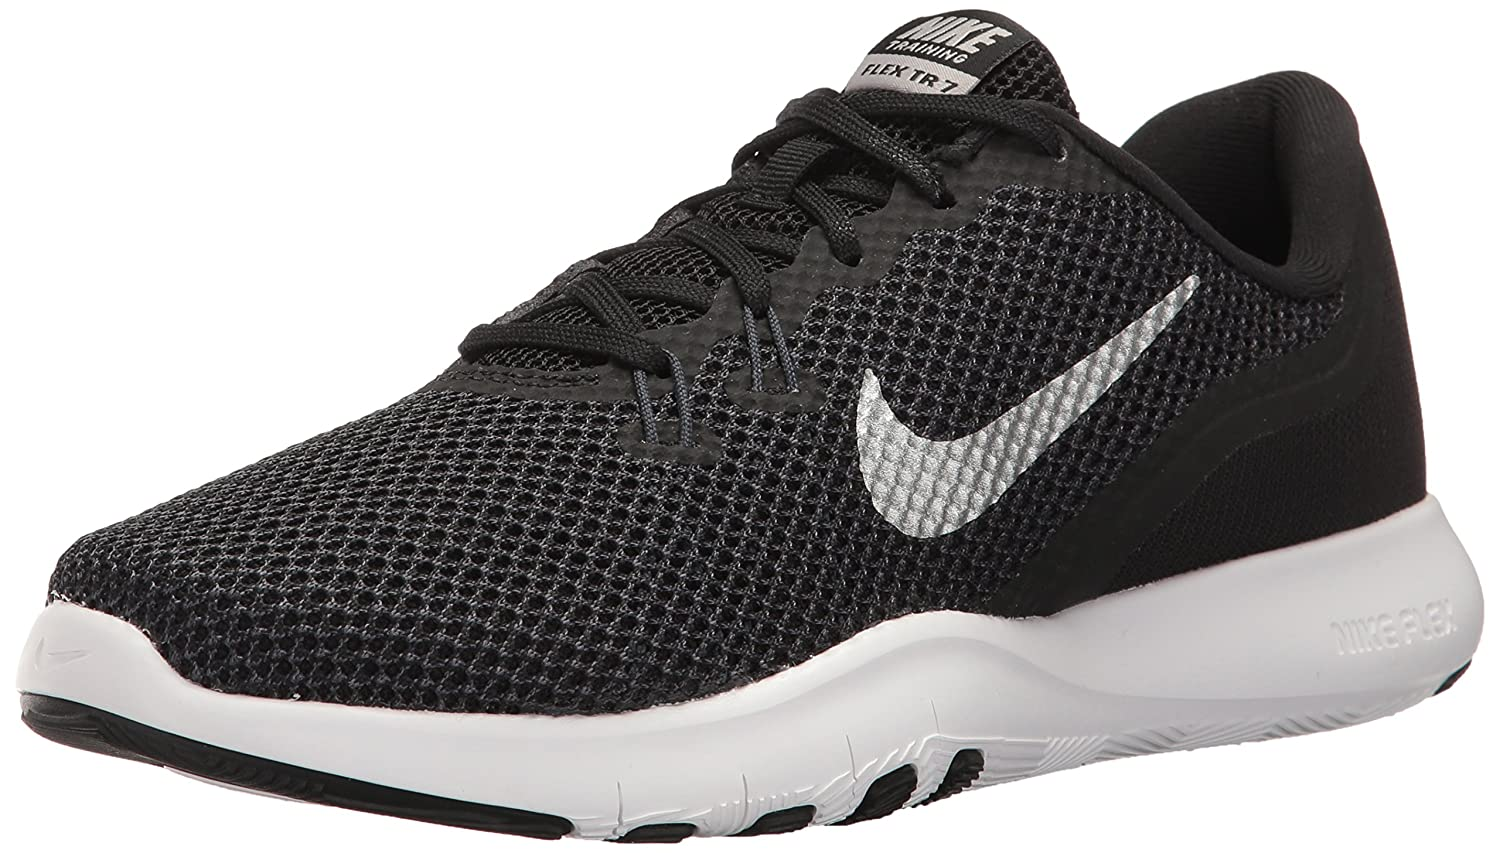 NIKE Women's Flex 7 Cross Trainer B01N2WM8OH 8.5 W US|Black/Metallic Silver - Anthracite - White